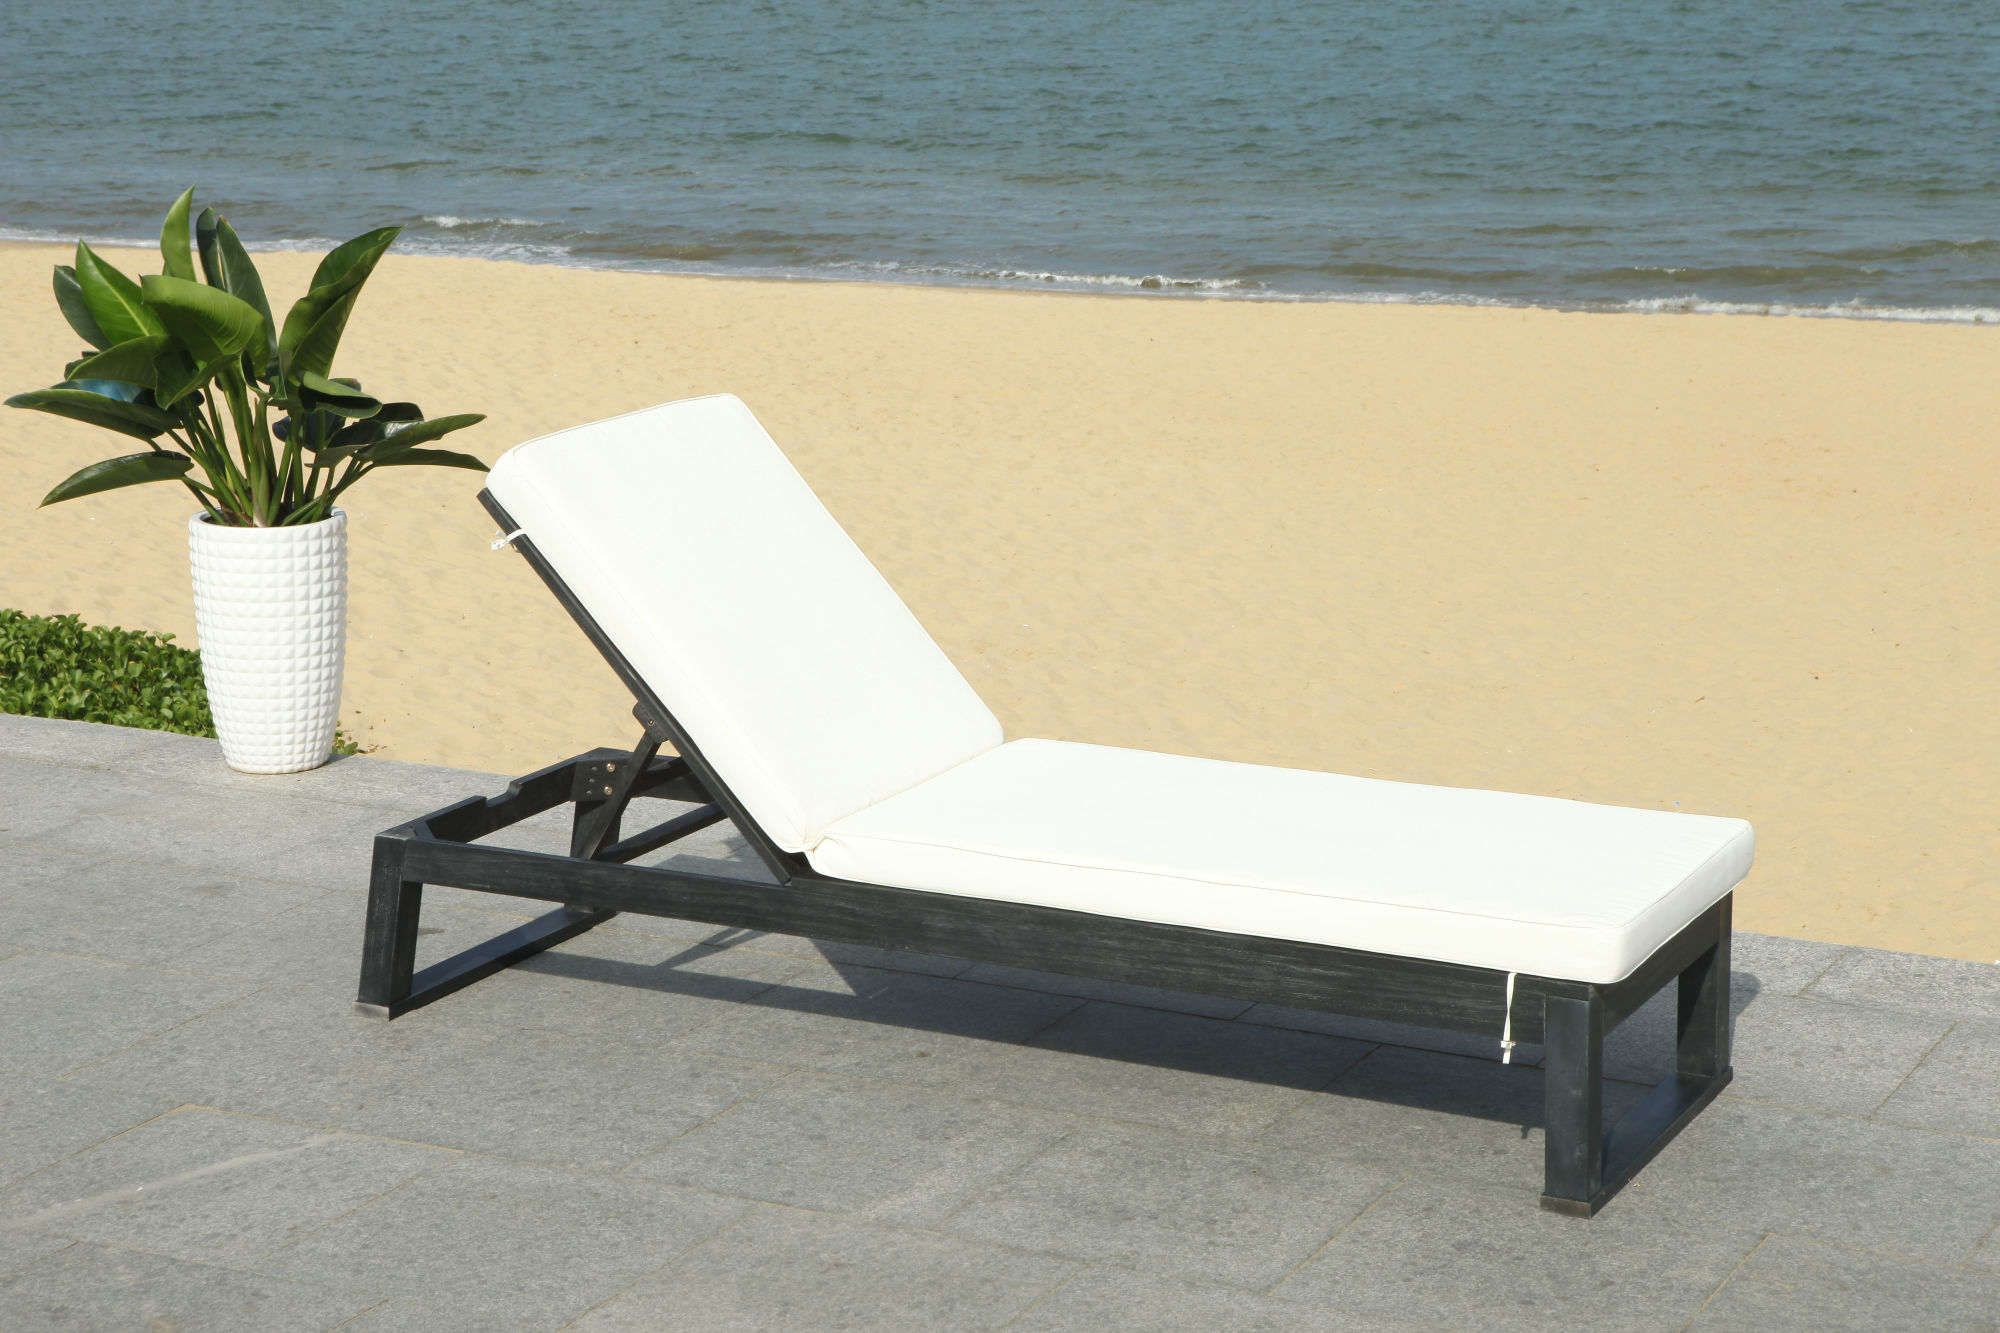 Solano Sunlounger on Safavieh Outdoor Living Solano Sunlounger id=18533